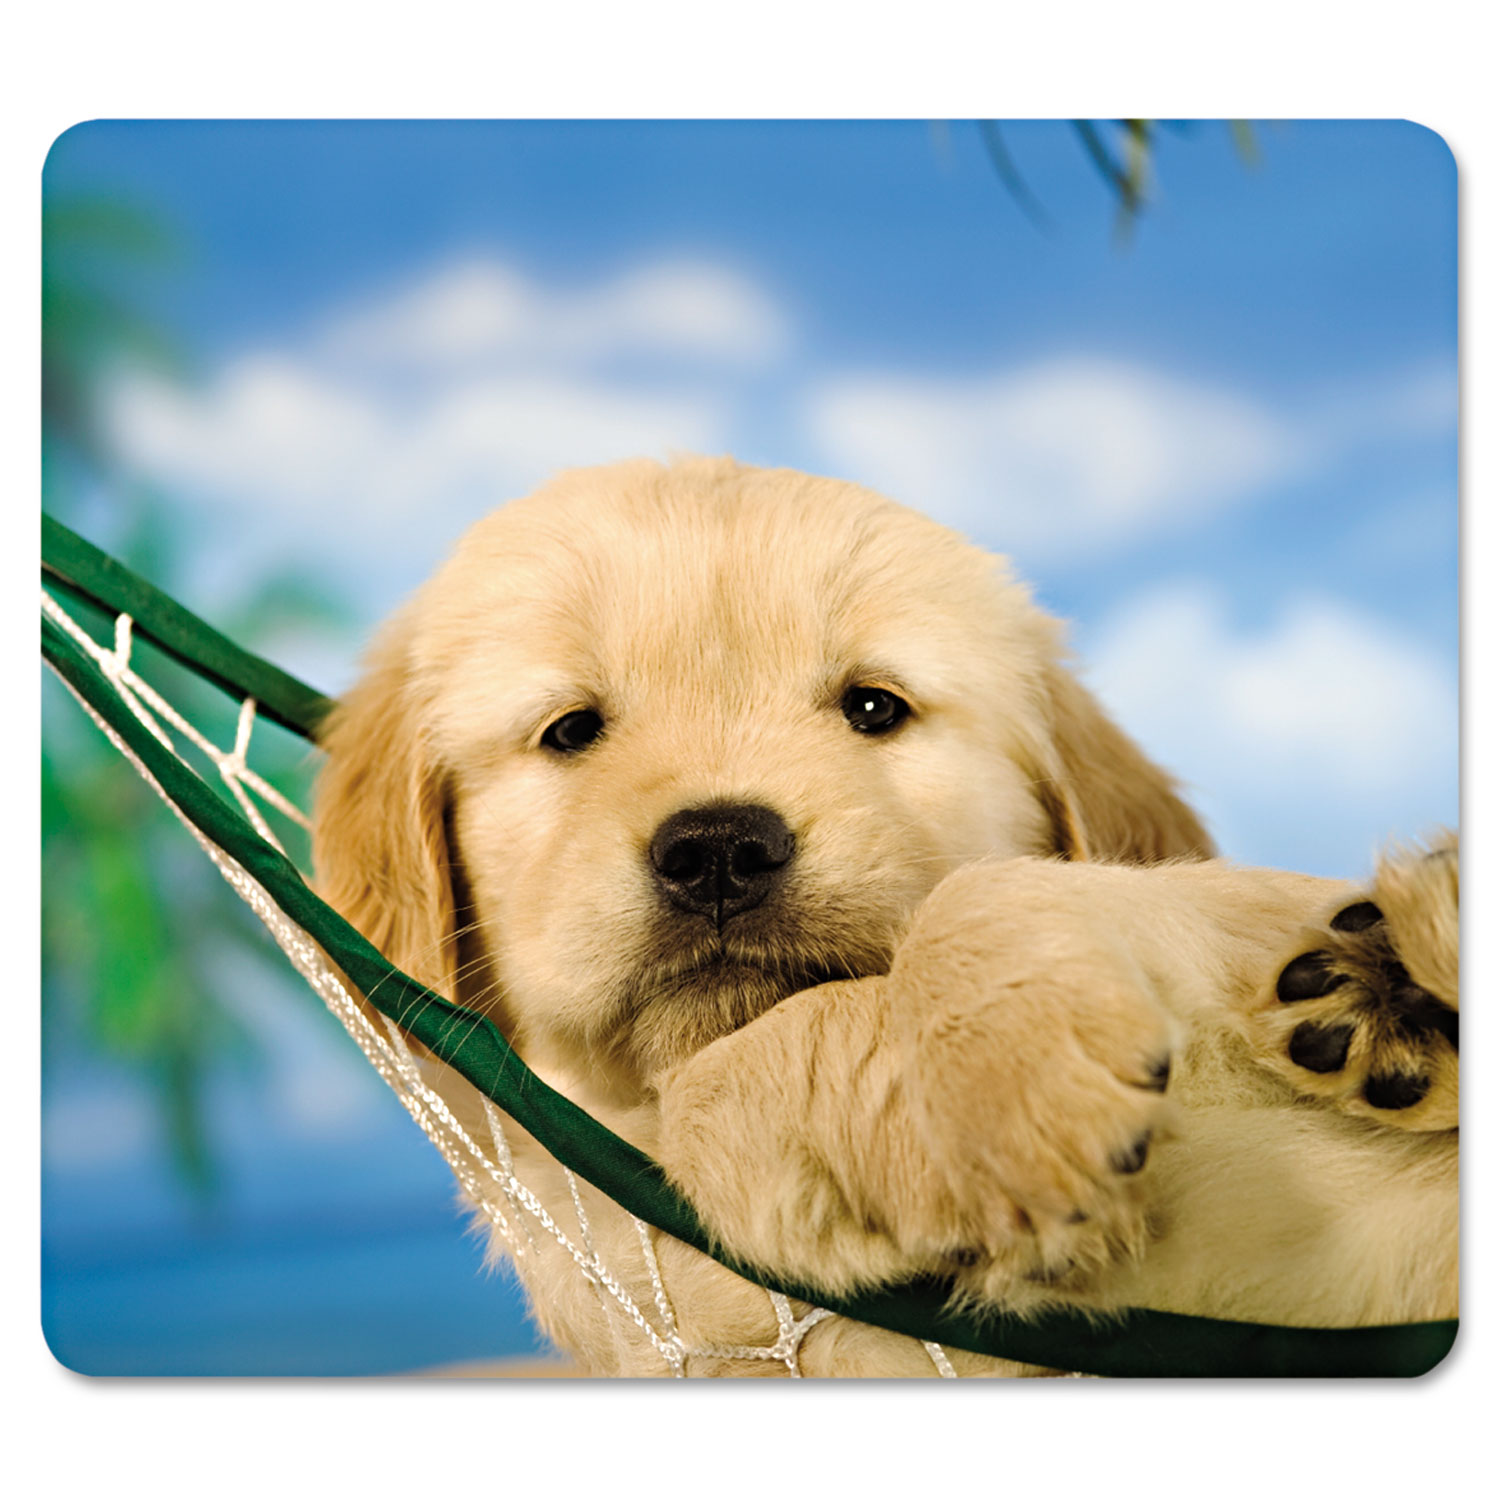 Recycled Mouse Pad, Nonskid Base, 9 x 8 x 1/16, Puppy in Hammock